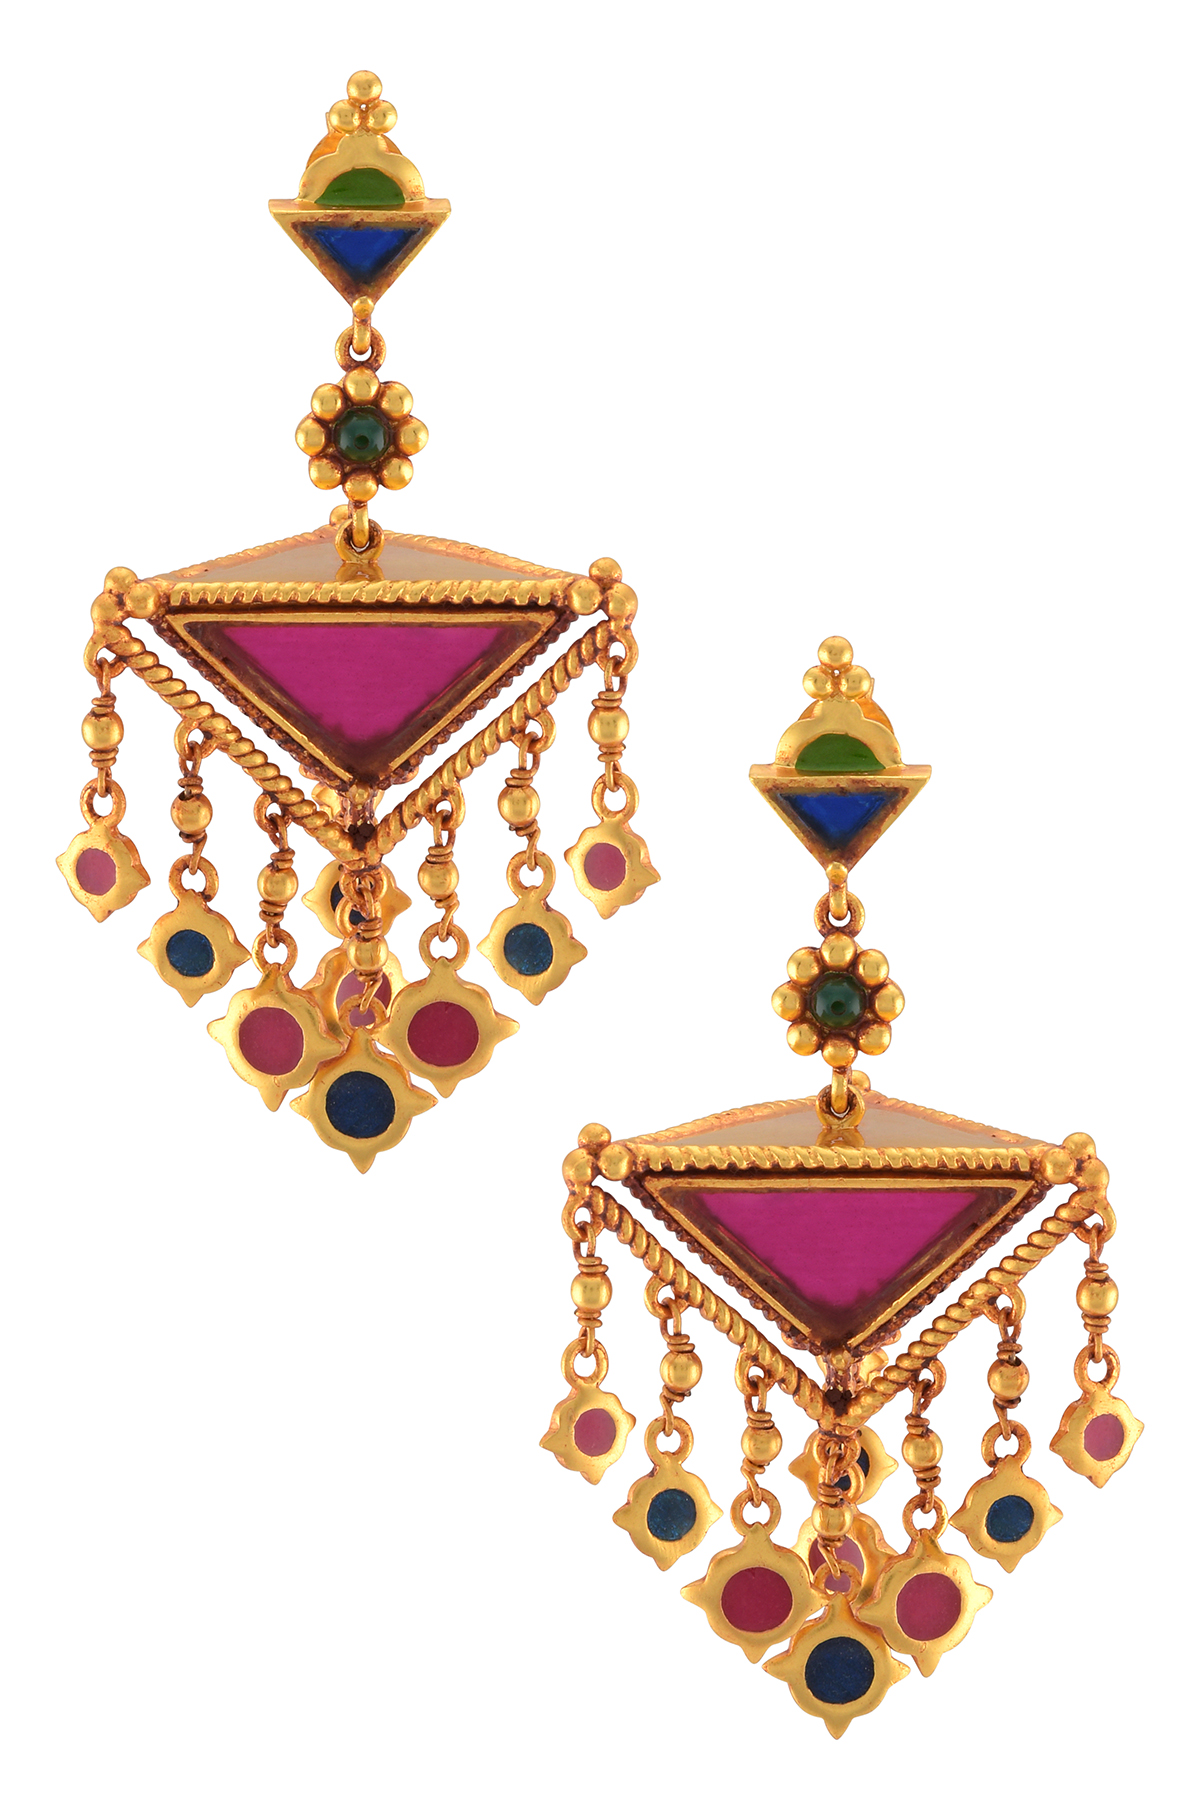 Gold Plated Colored Glass Pyramid Enamelled Charms Drop Earrings